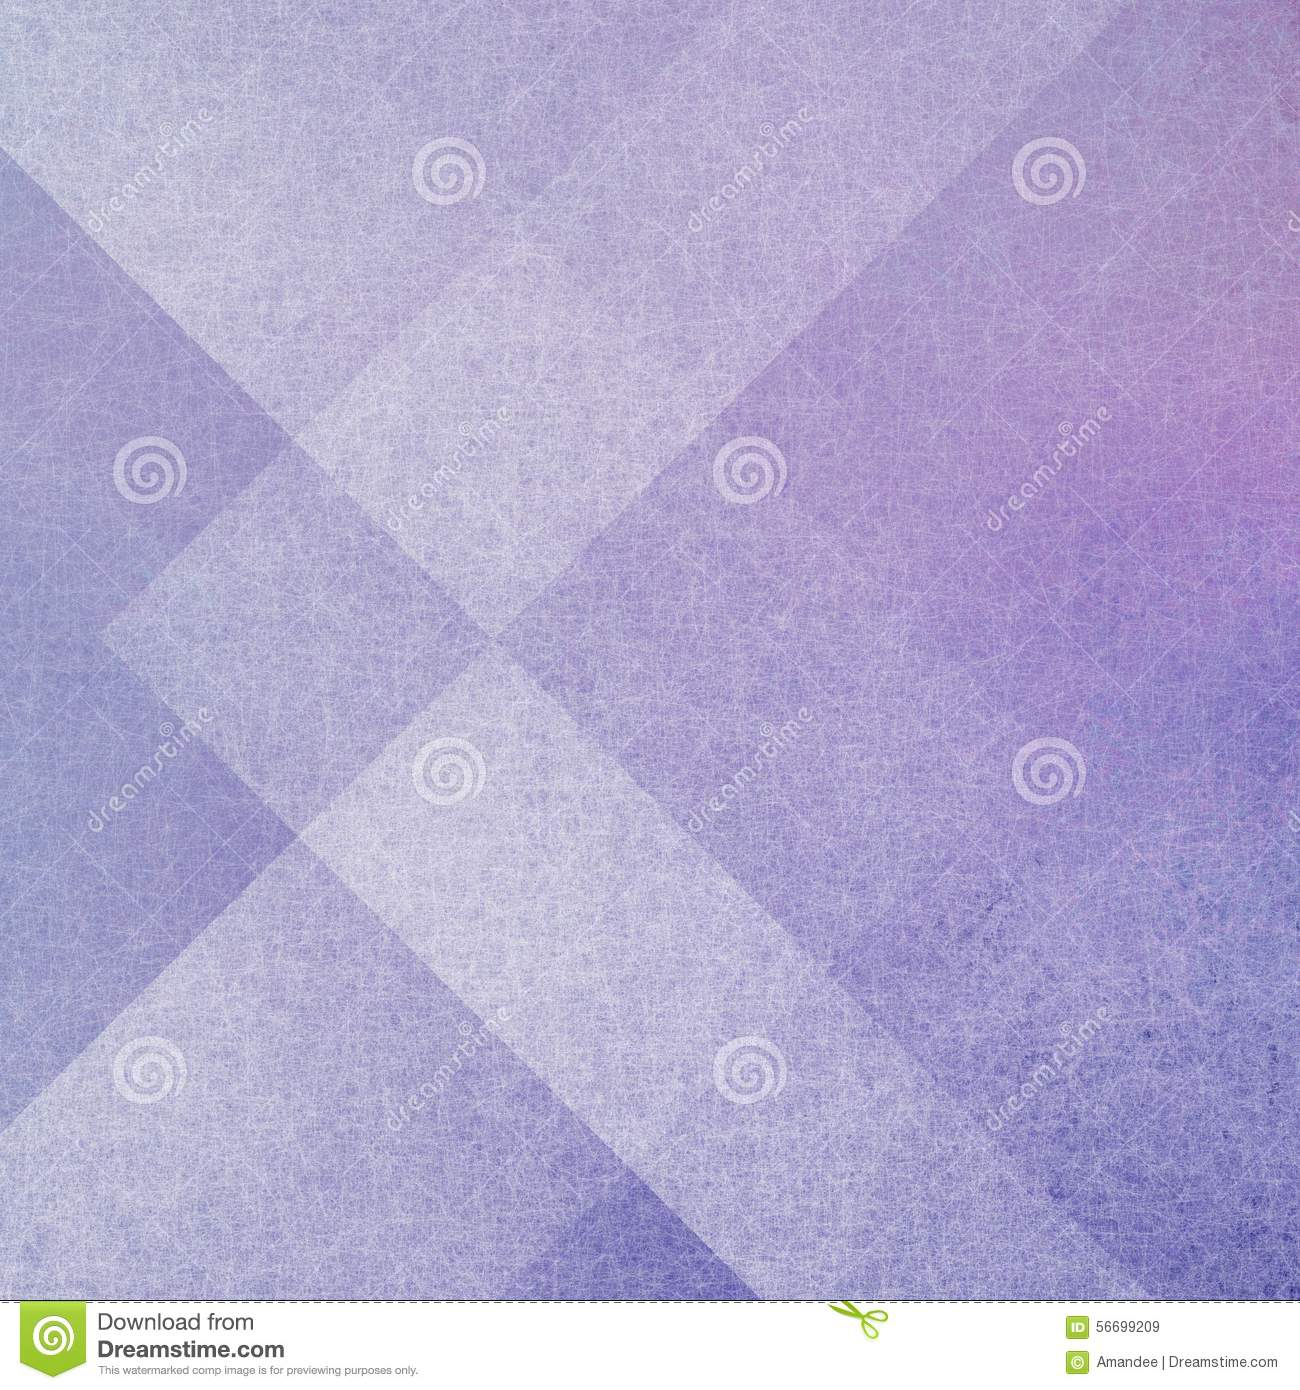 Abstract purple background with geometric layers of rectangels and triangle shapes